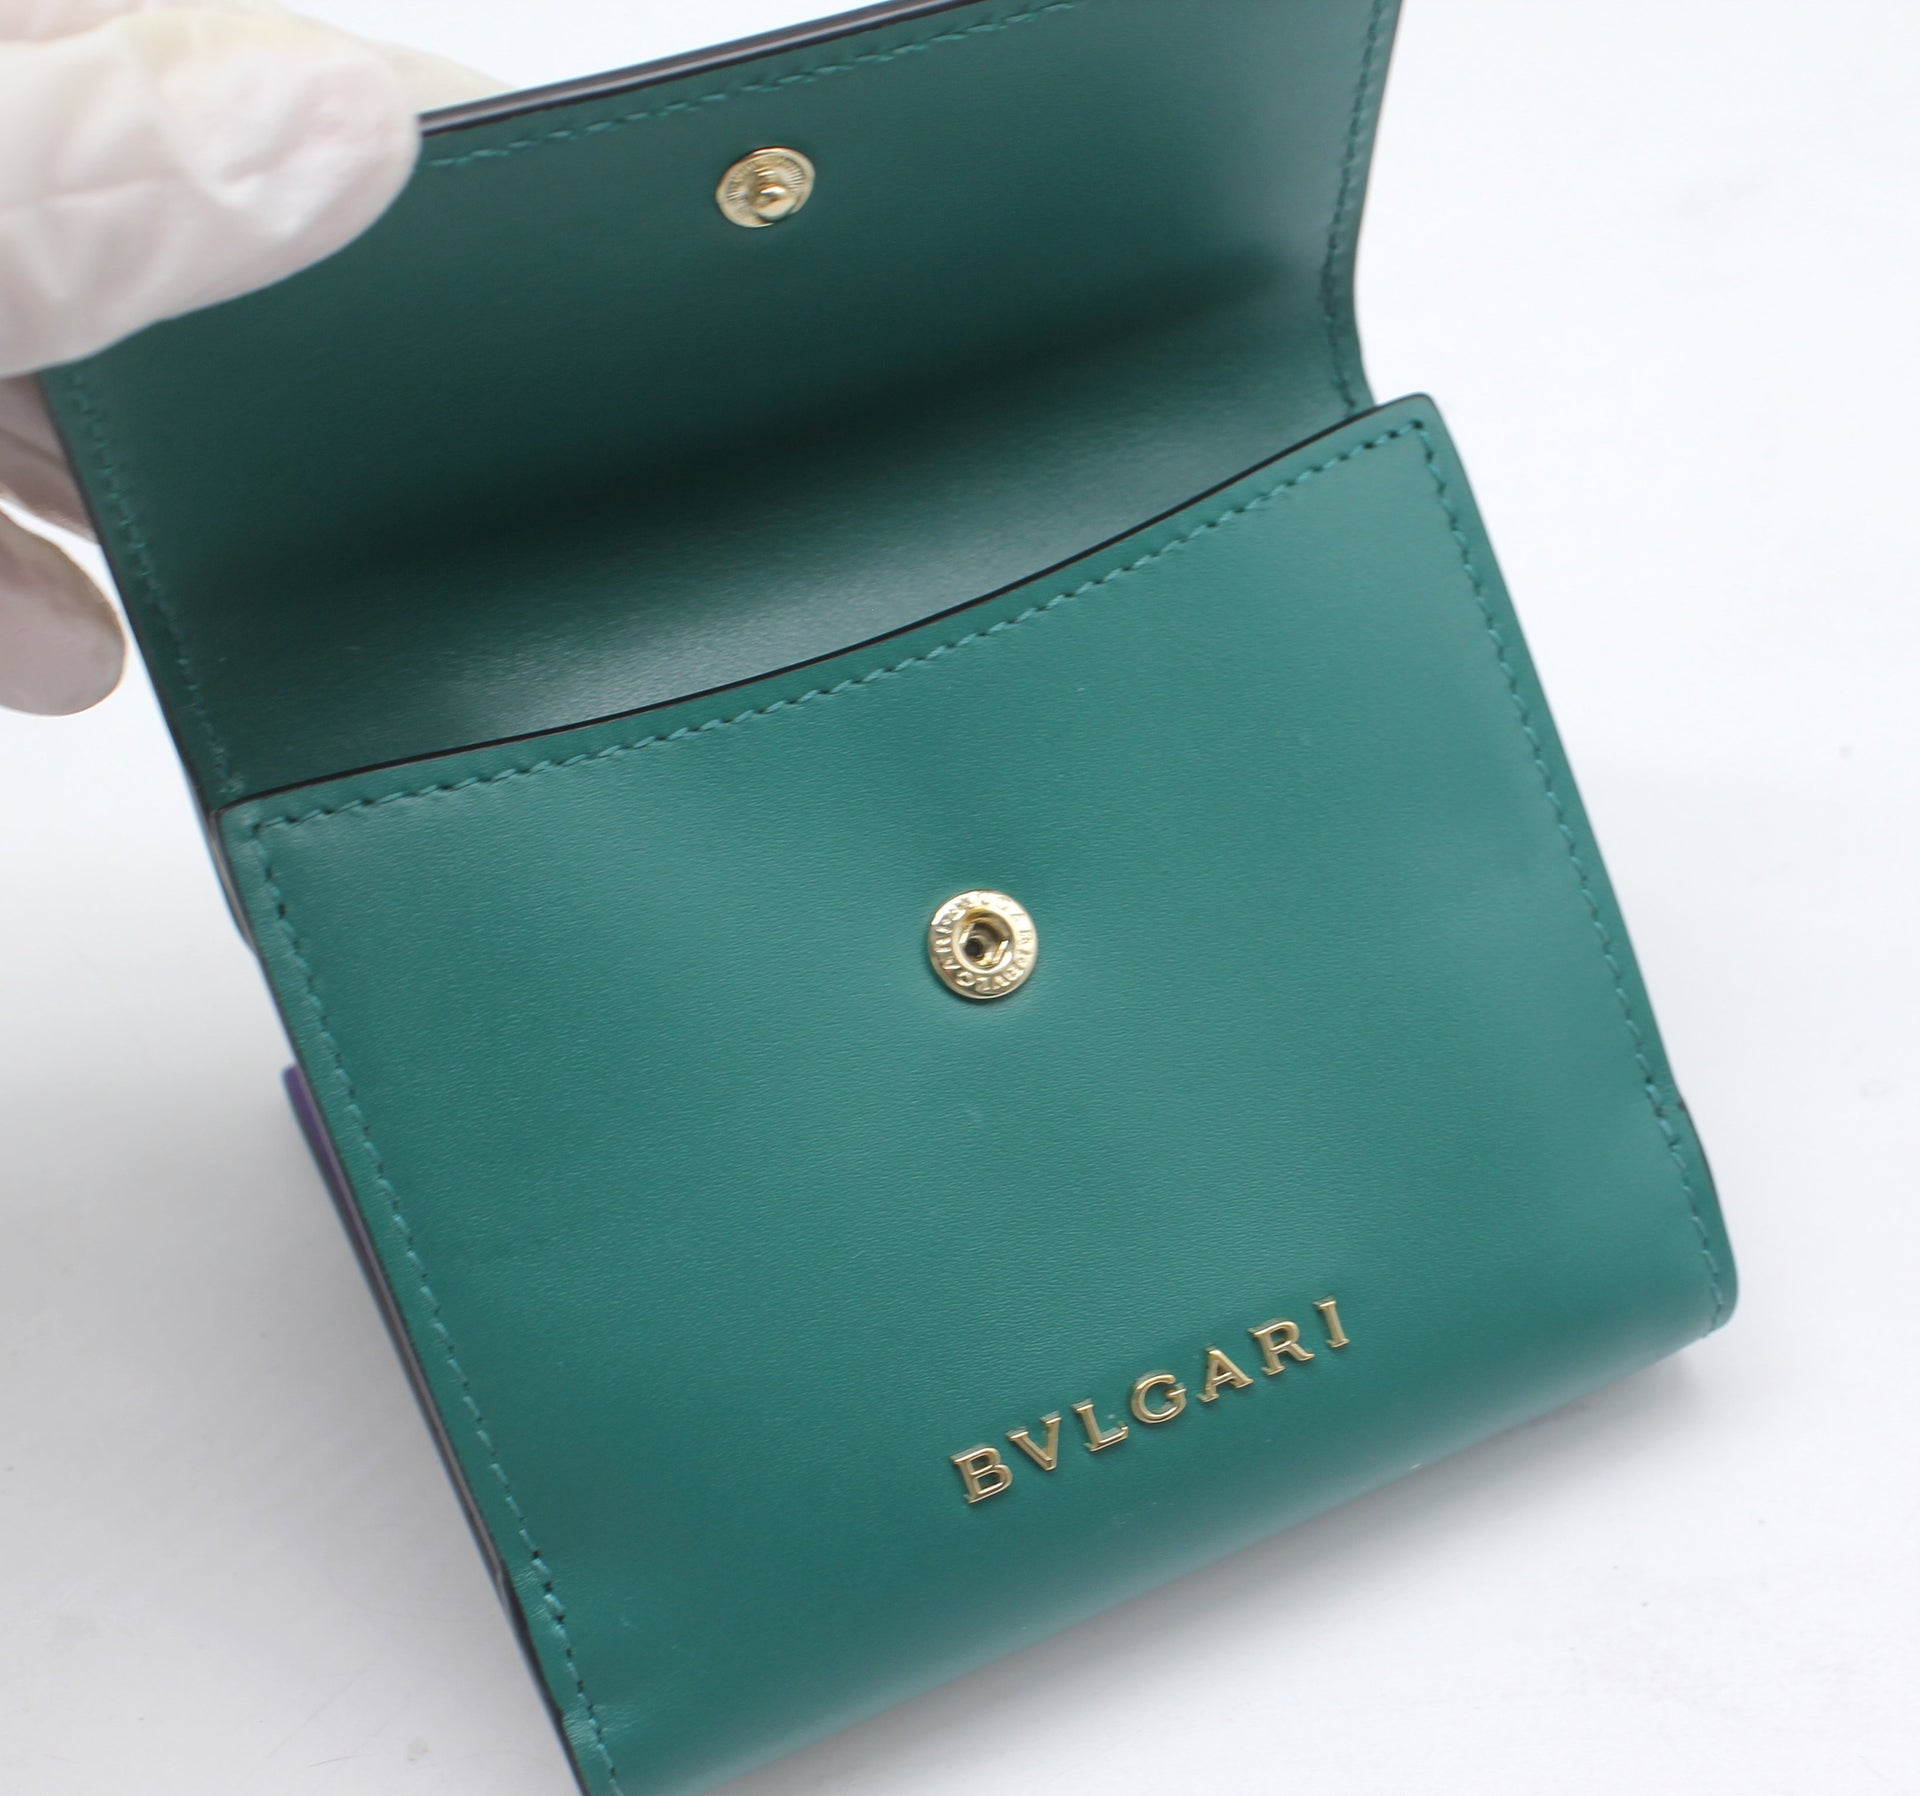 Bvlgari Serpenti Wallet